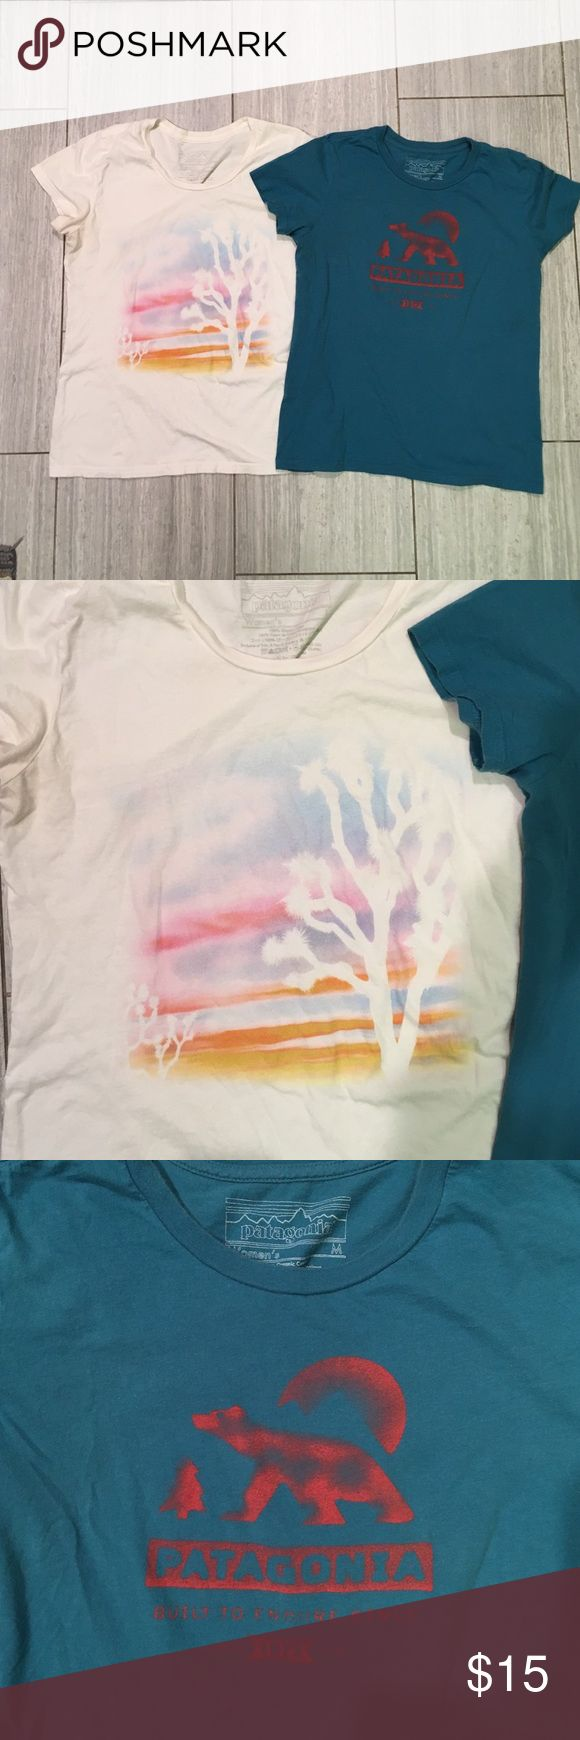 Patagonia Women's Tees (2) Patagonia Tees! Cream Desert graphic is a large and real bear graphic is a medium. Both rarely worn. Comfy! Patagonia Tops Tees - Short Sleeve